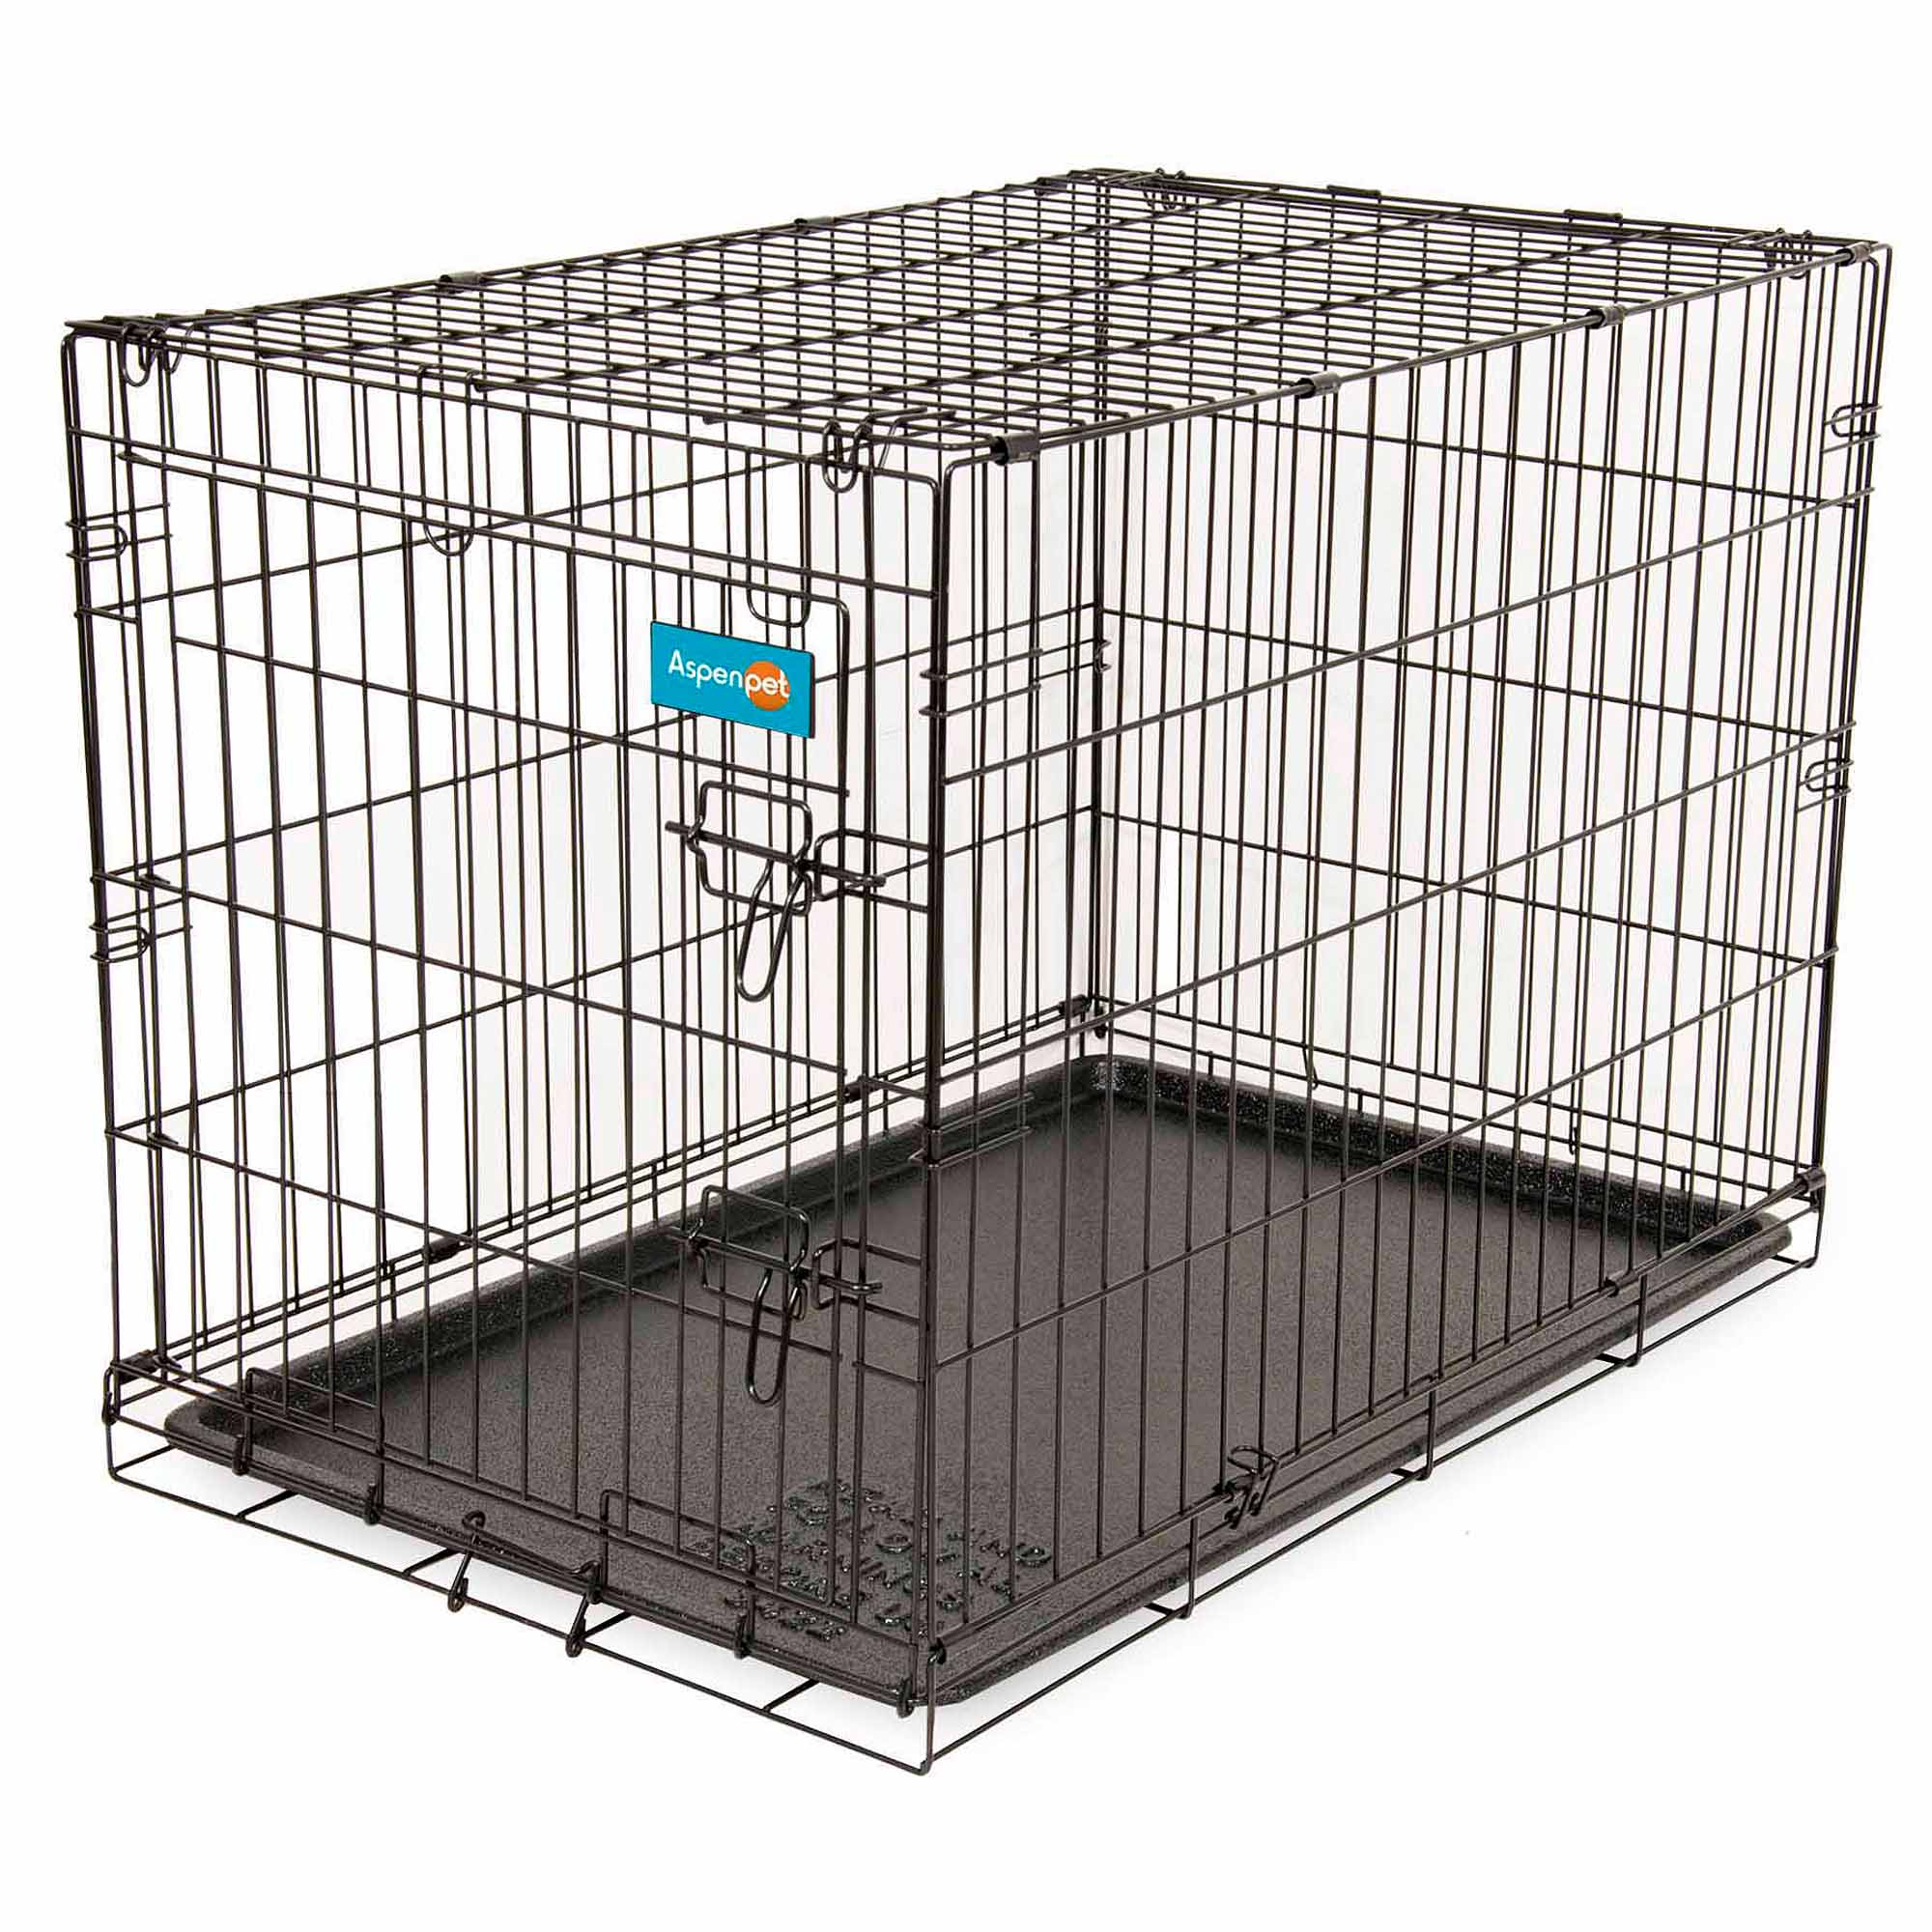 dog crates carriers  kennels  walmartcom - aspen pet home training  wire kennel  lbs